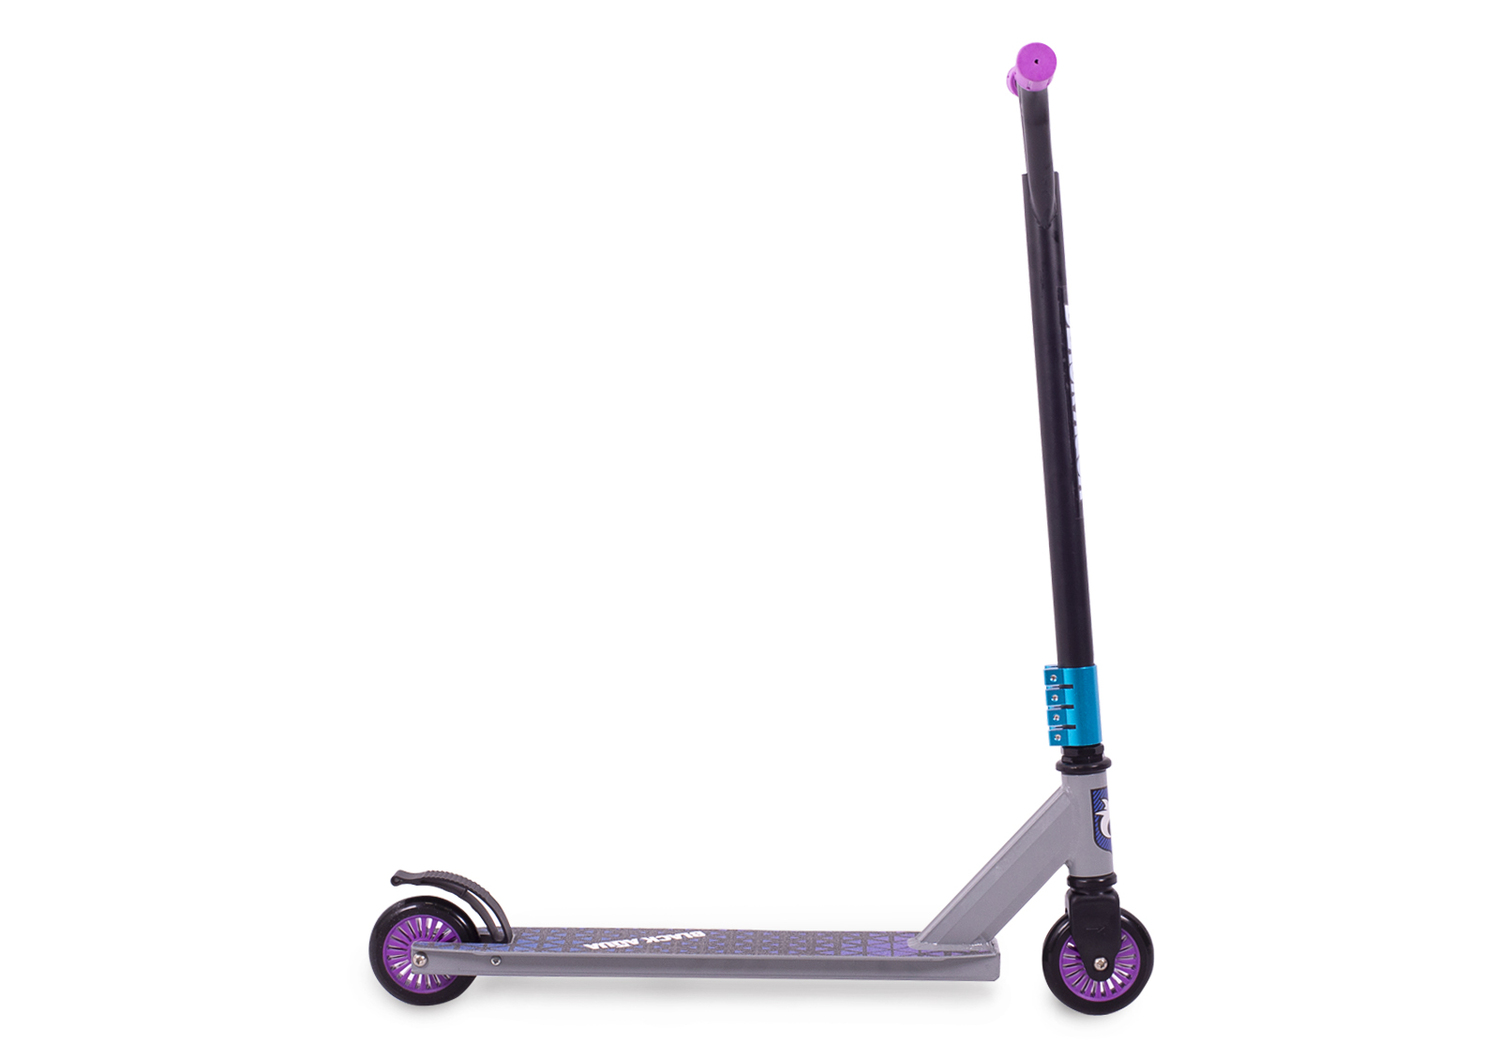 Самокат STUNT SCOOTER-3 трюковой